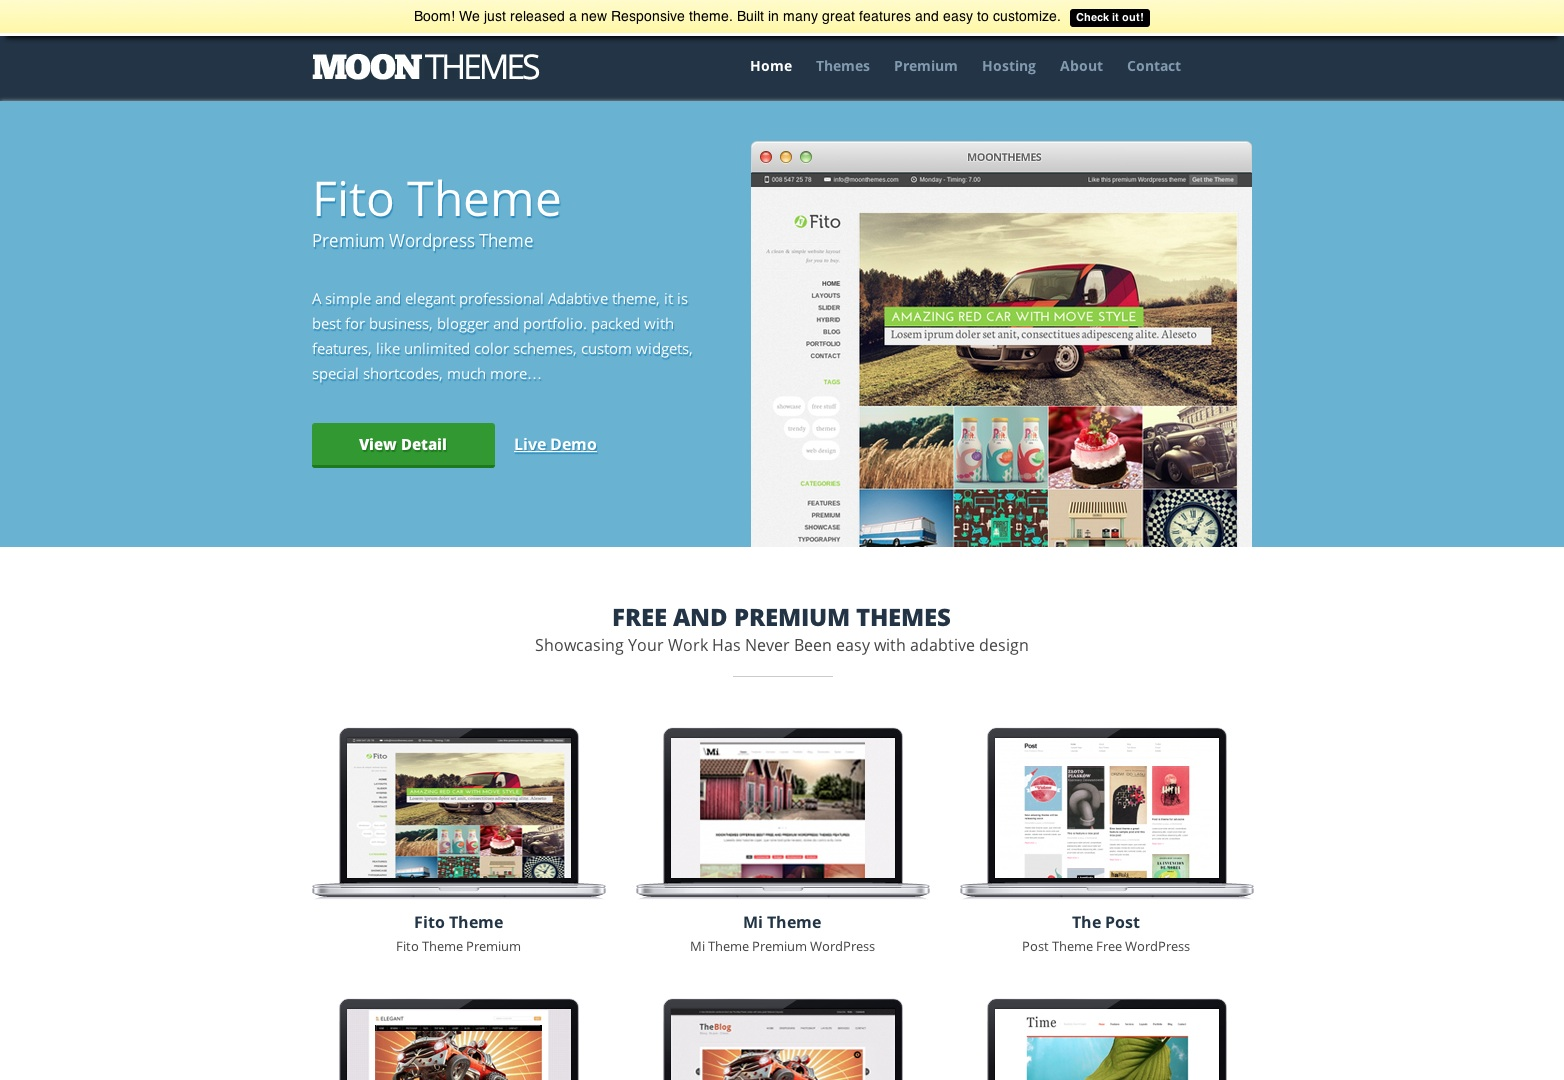 MOONTHEMES - Free Premium High Quality WordPress Themes